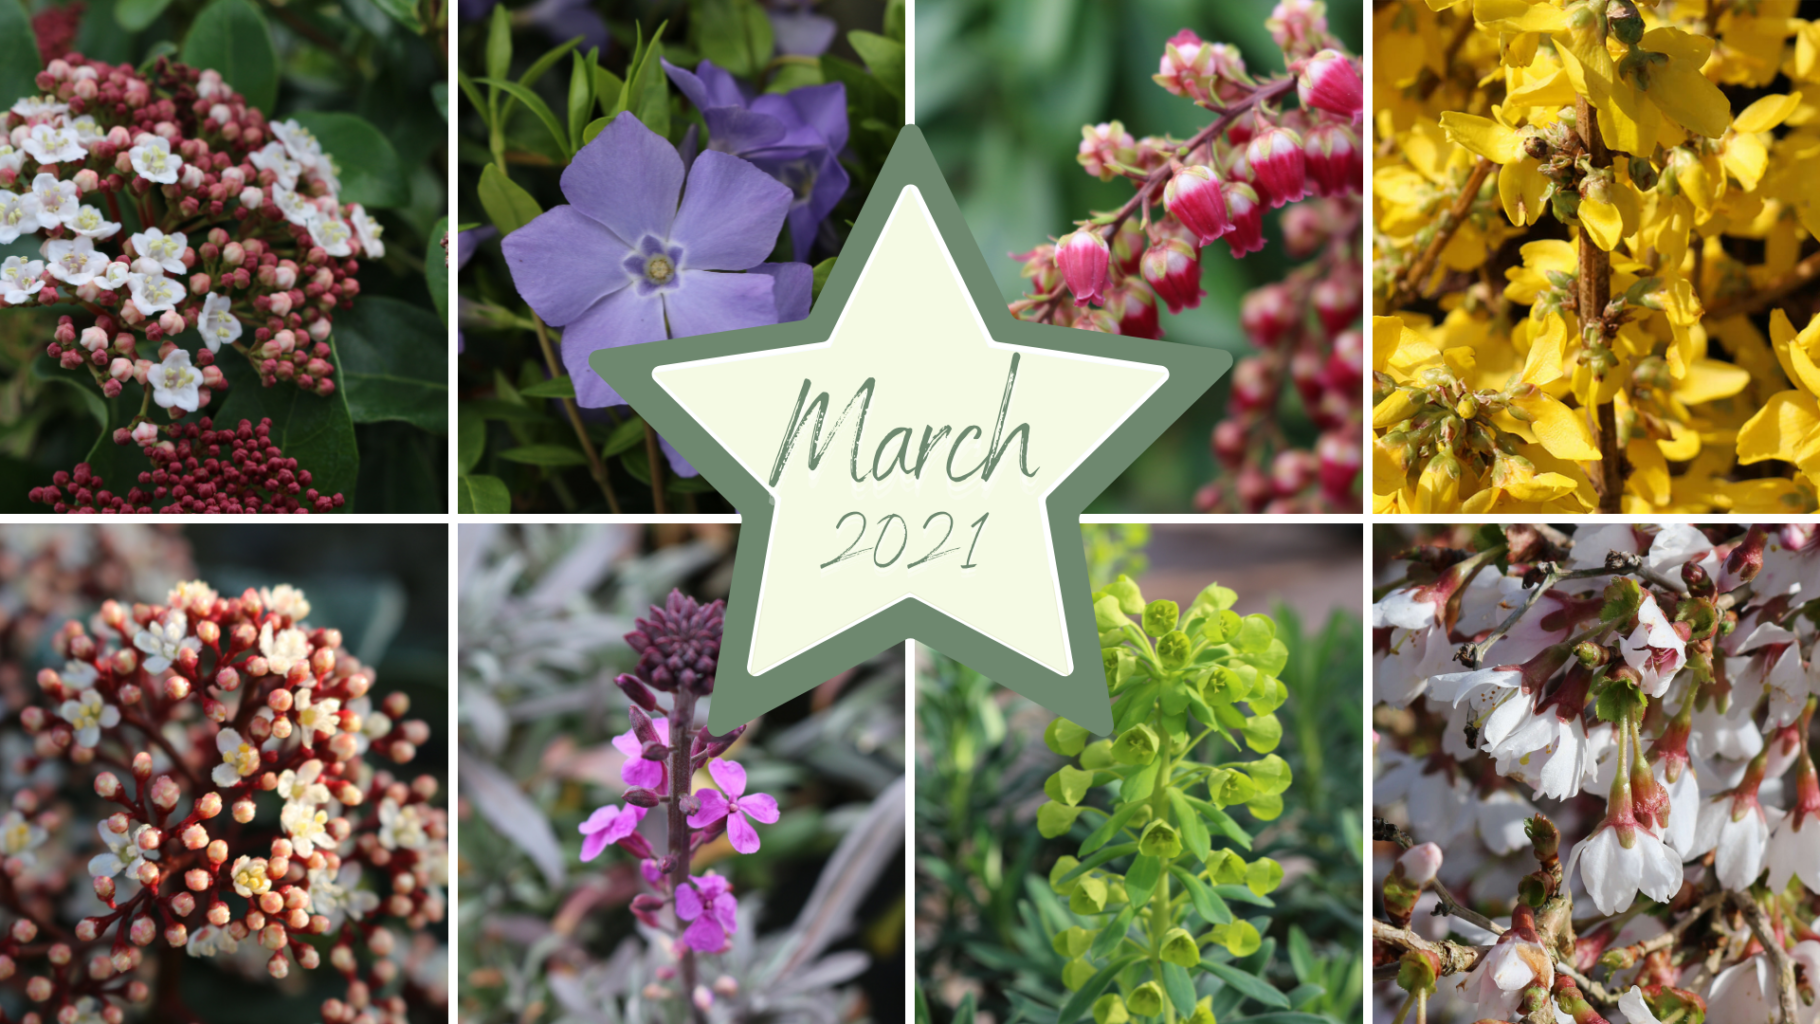 Plants that look good this March